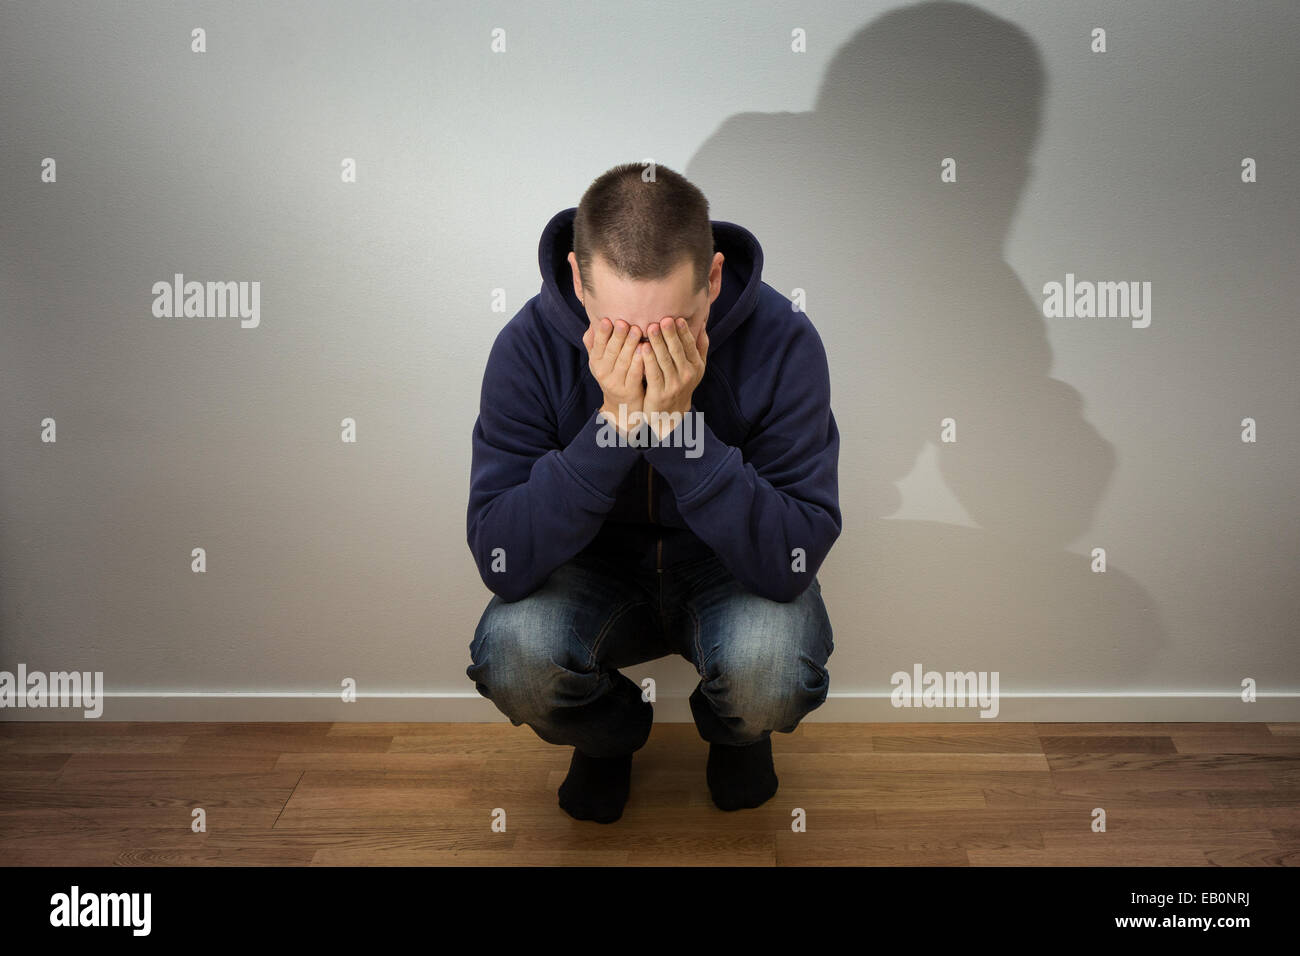 Man crouched and holding his face. Concept photo of anxienty, solitude and sorrow. - Stock Image